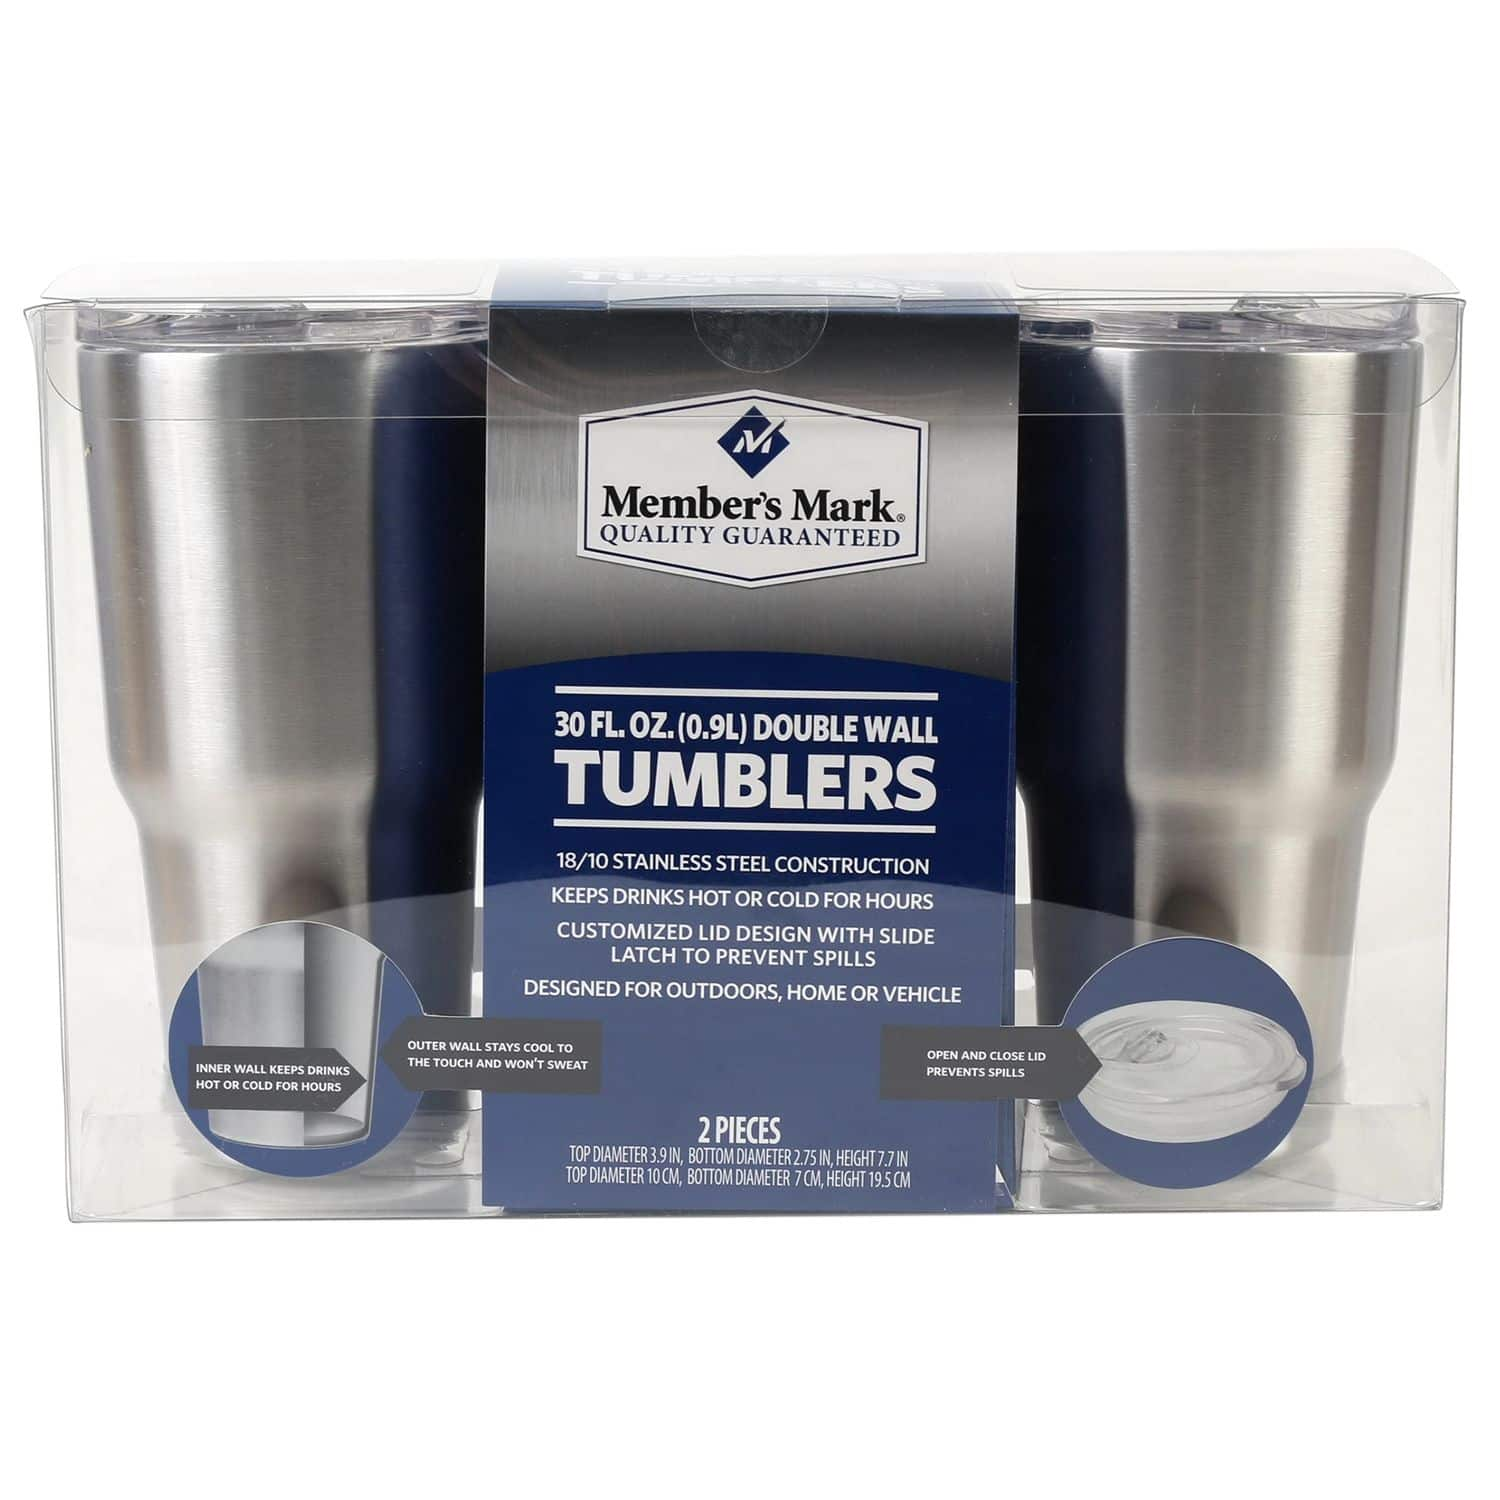 Member's Mark 30oz Tumblers, 2-Pack Sam's Club $19.98 online(+shipping) and in most clubs- like Yeti or Ozark Trail